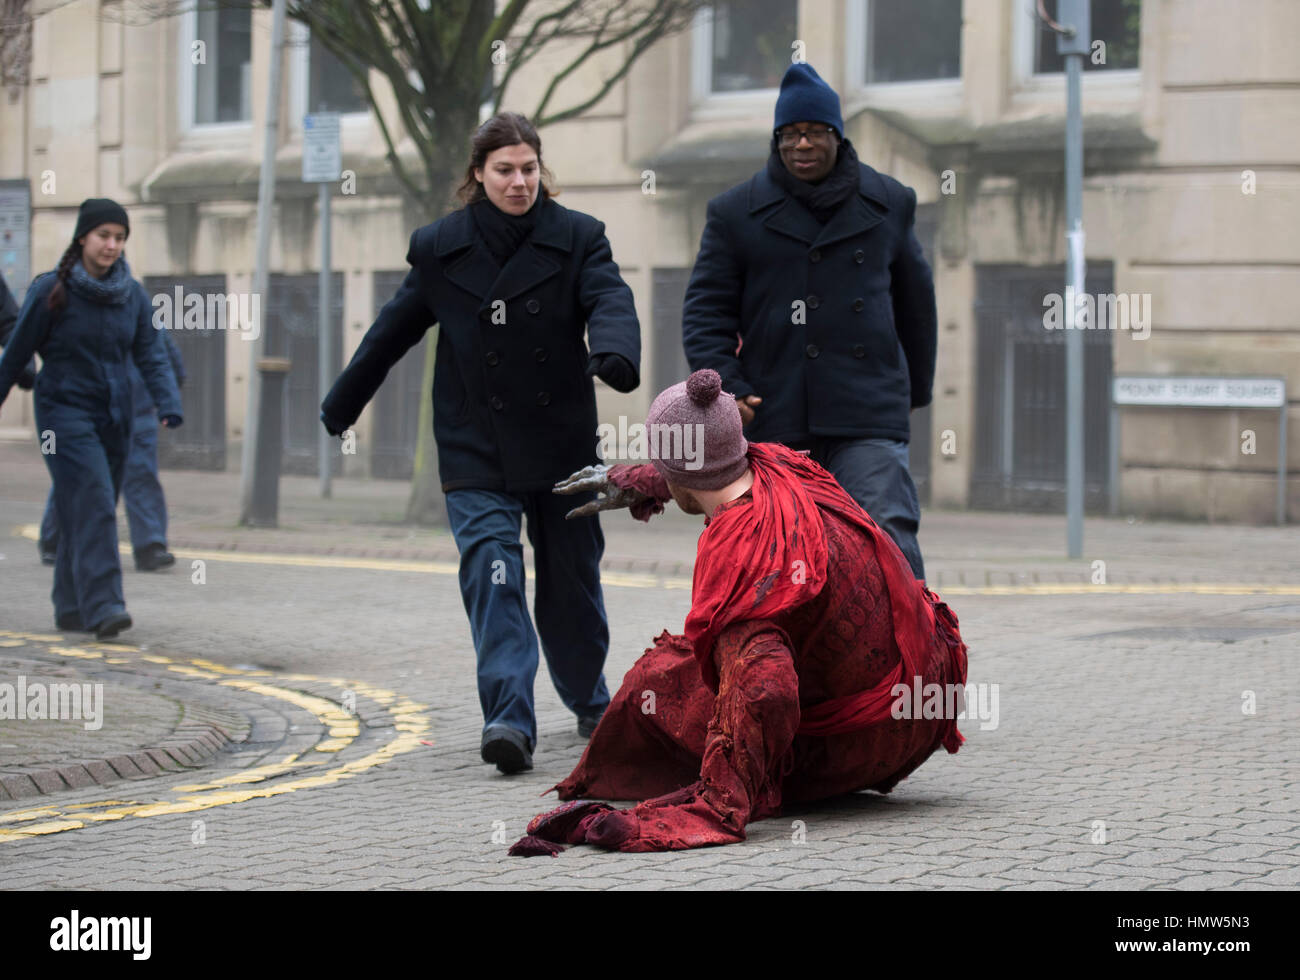 Costume actors spotted during filming for BBC show Doctor Who in Cardiff South Wales UK.  sc 1 st  Alamy & Costume actors spotted during filming for BBC show Doctor Who in ...